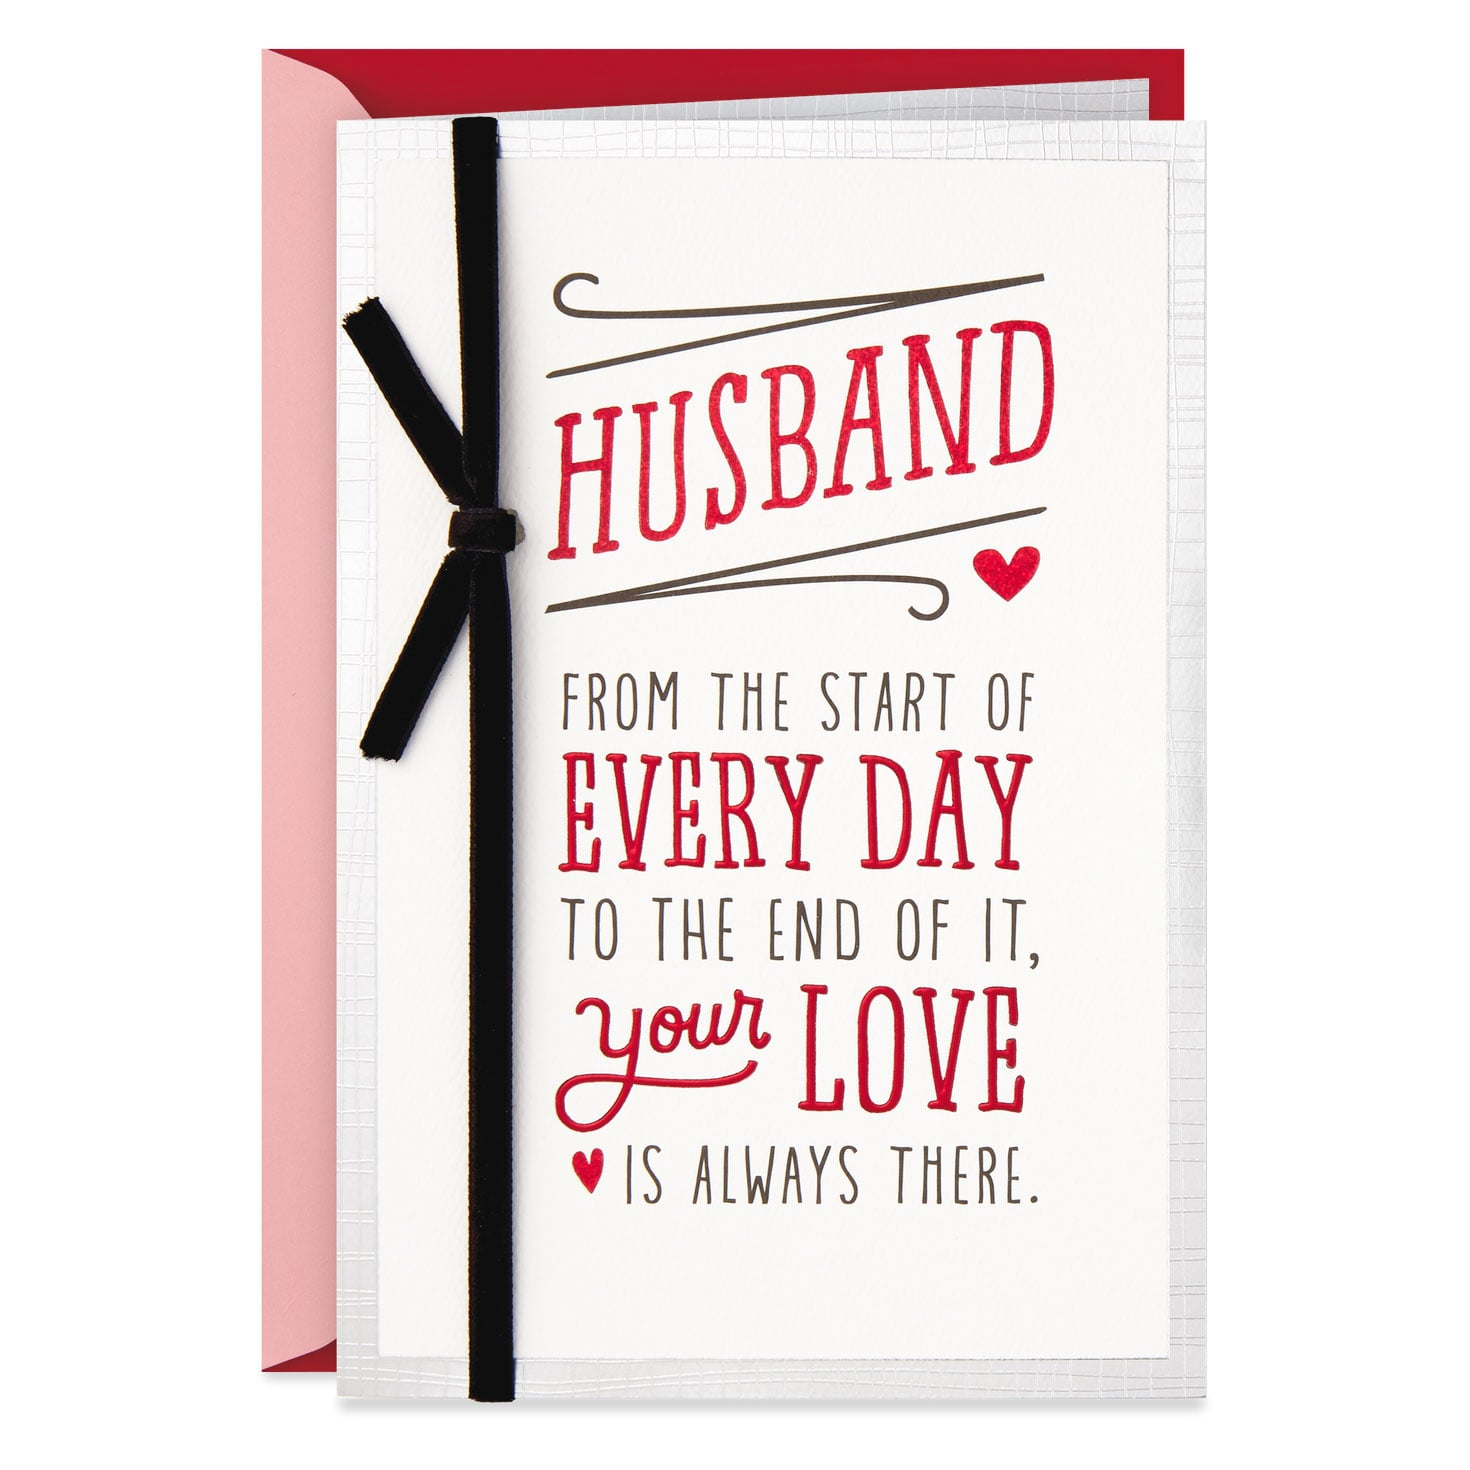 husband your love is always there valentine's day card